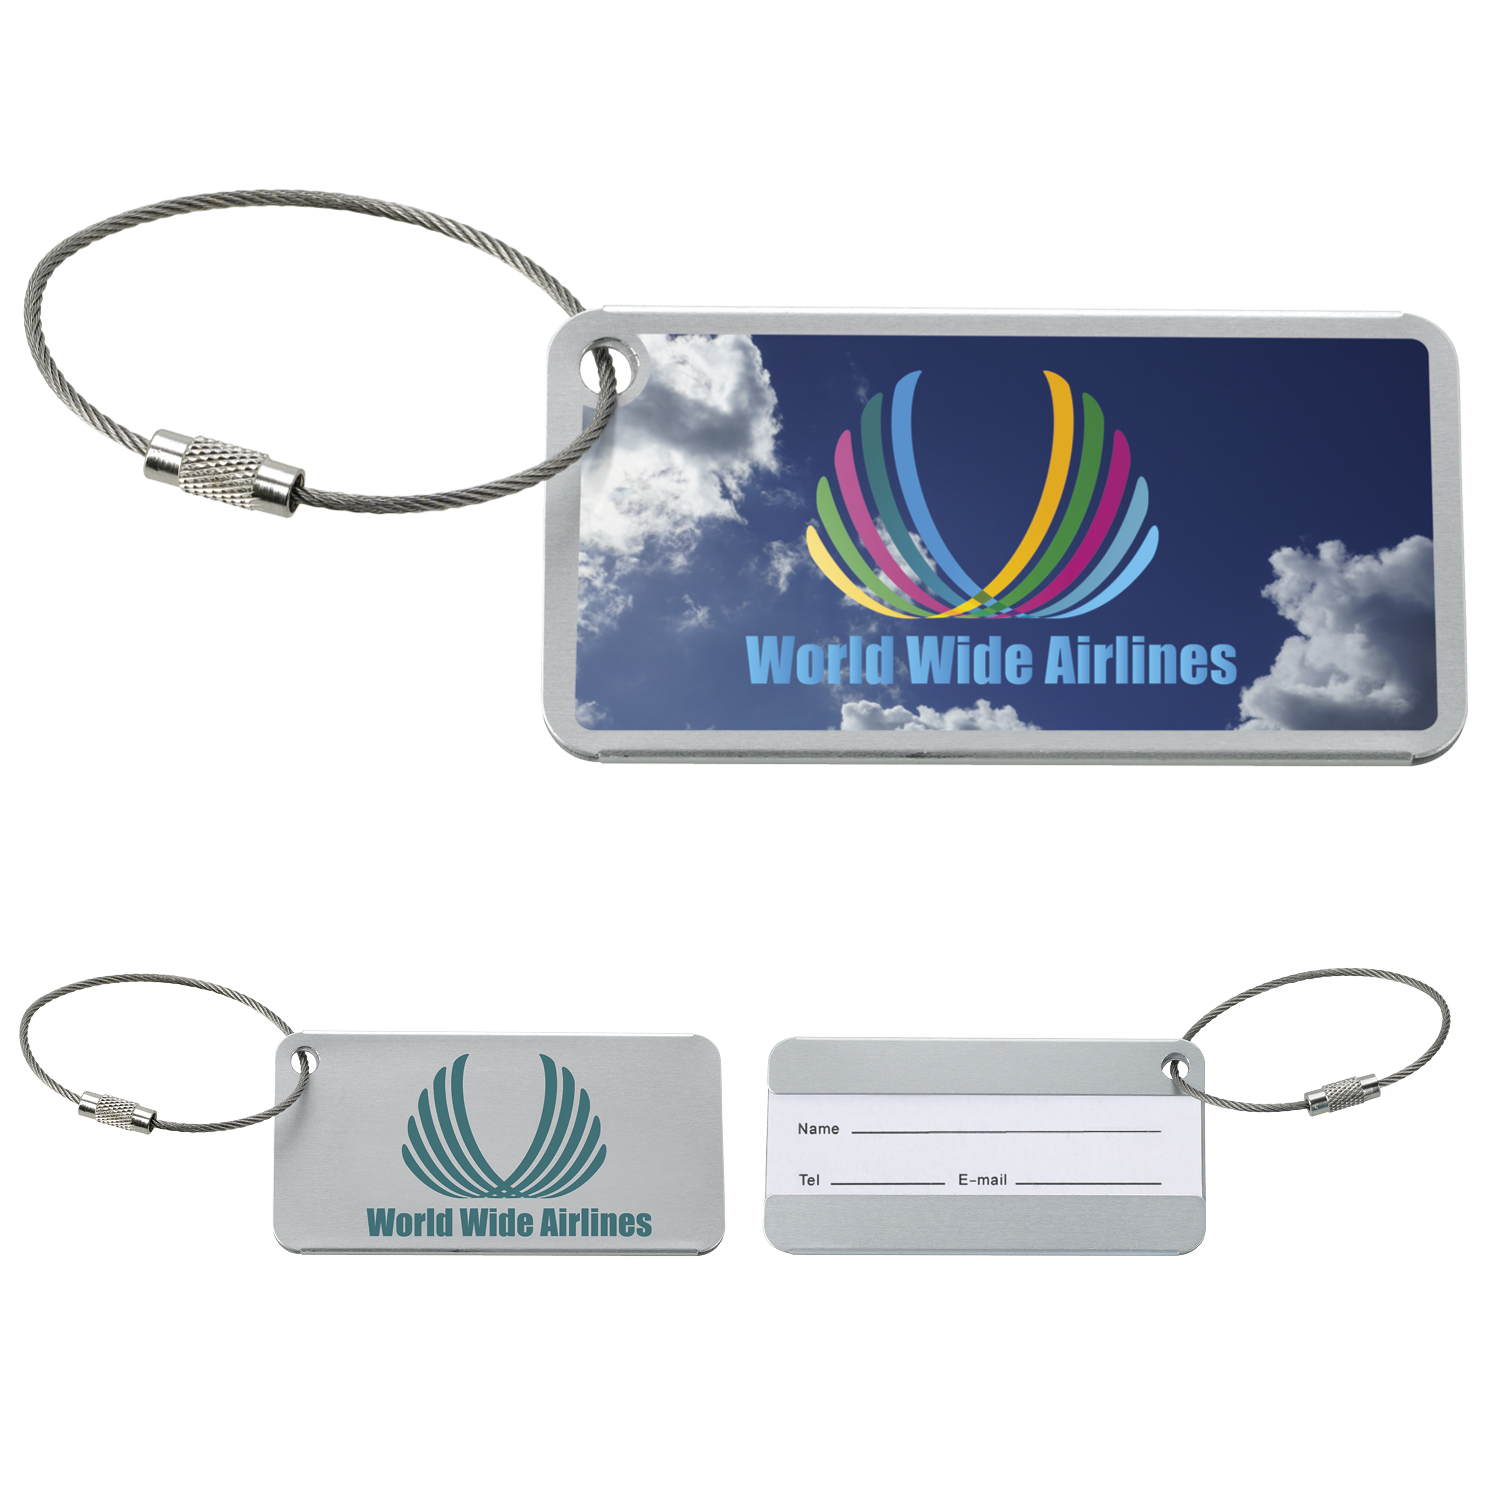 GoodValue Compact Luggage Tag, #15638, 1 Colour Imprint